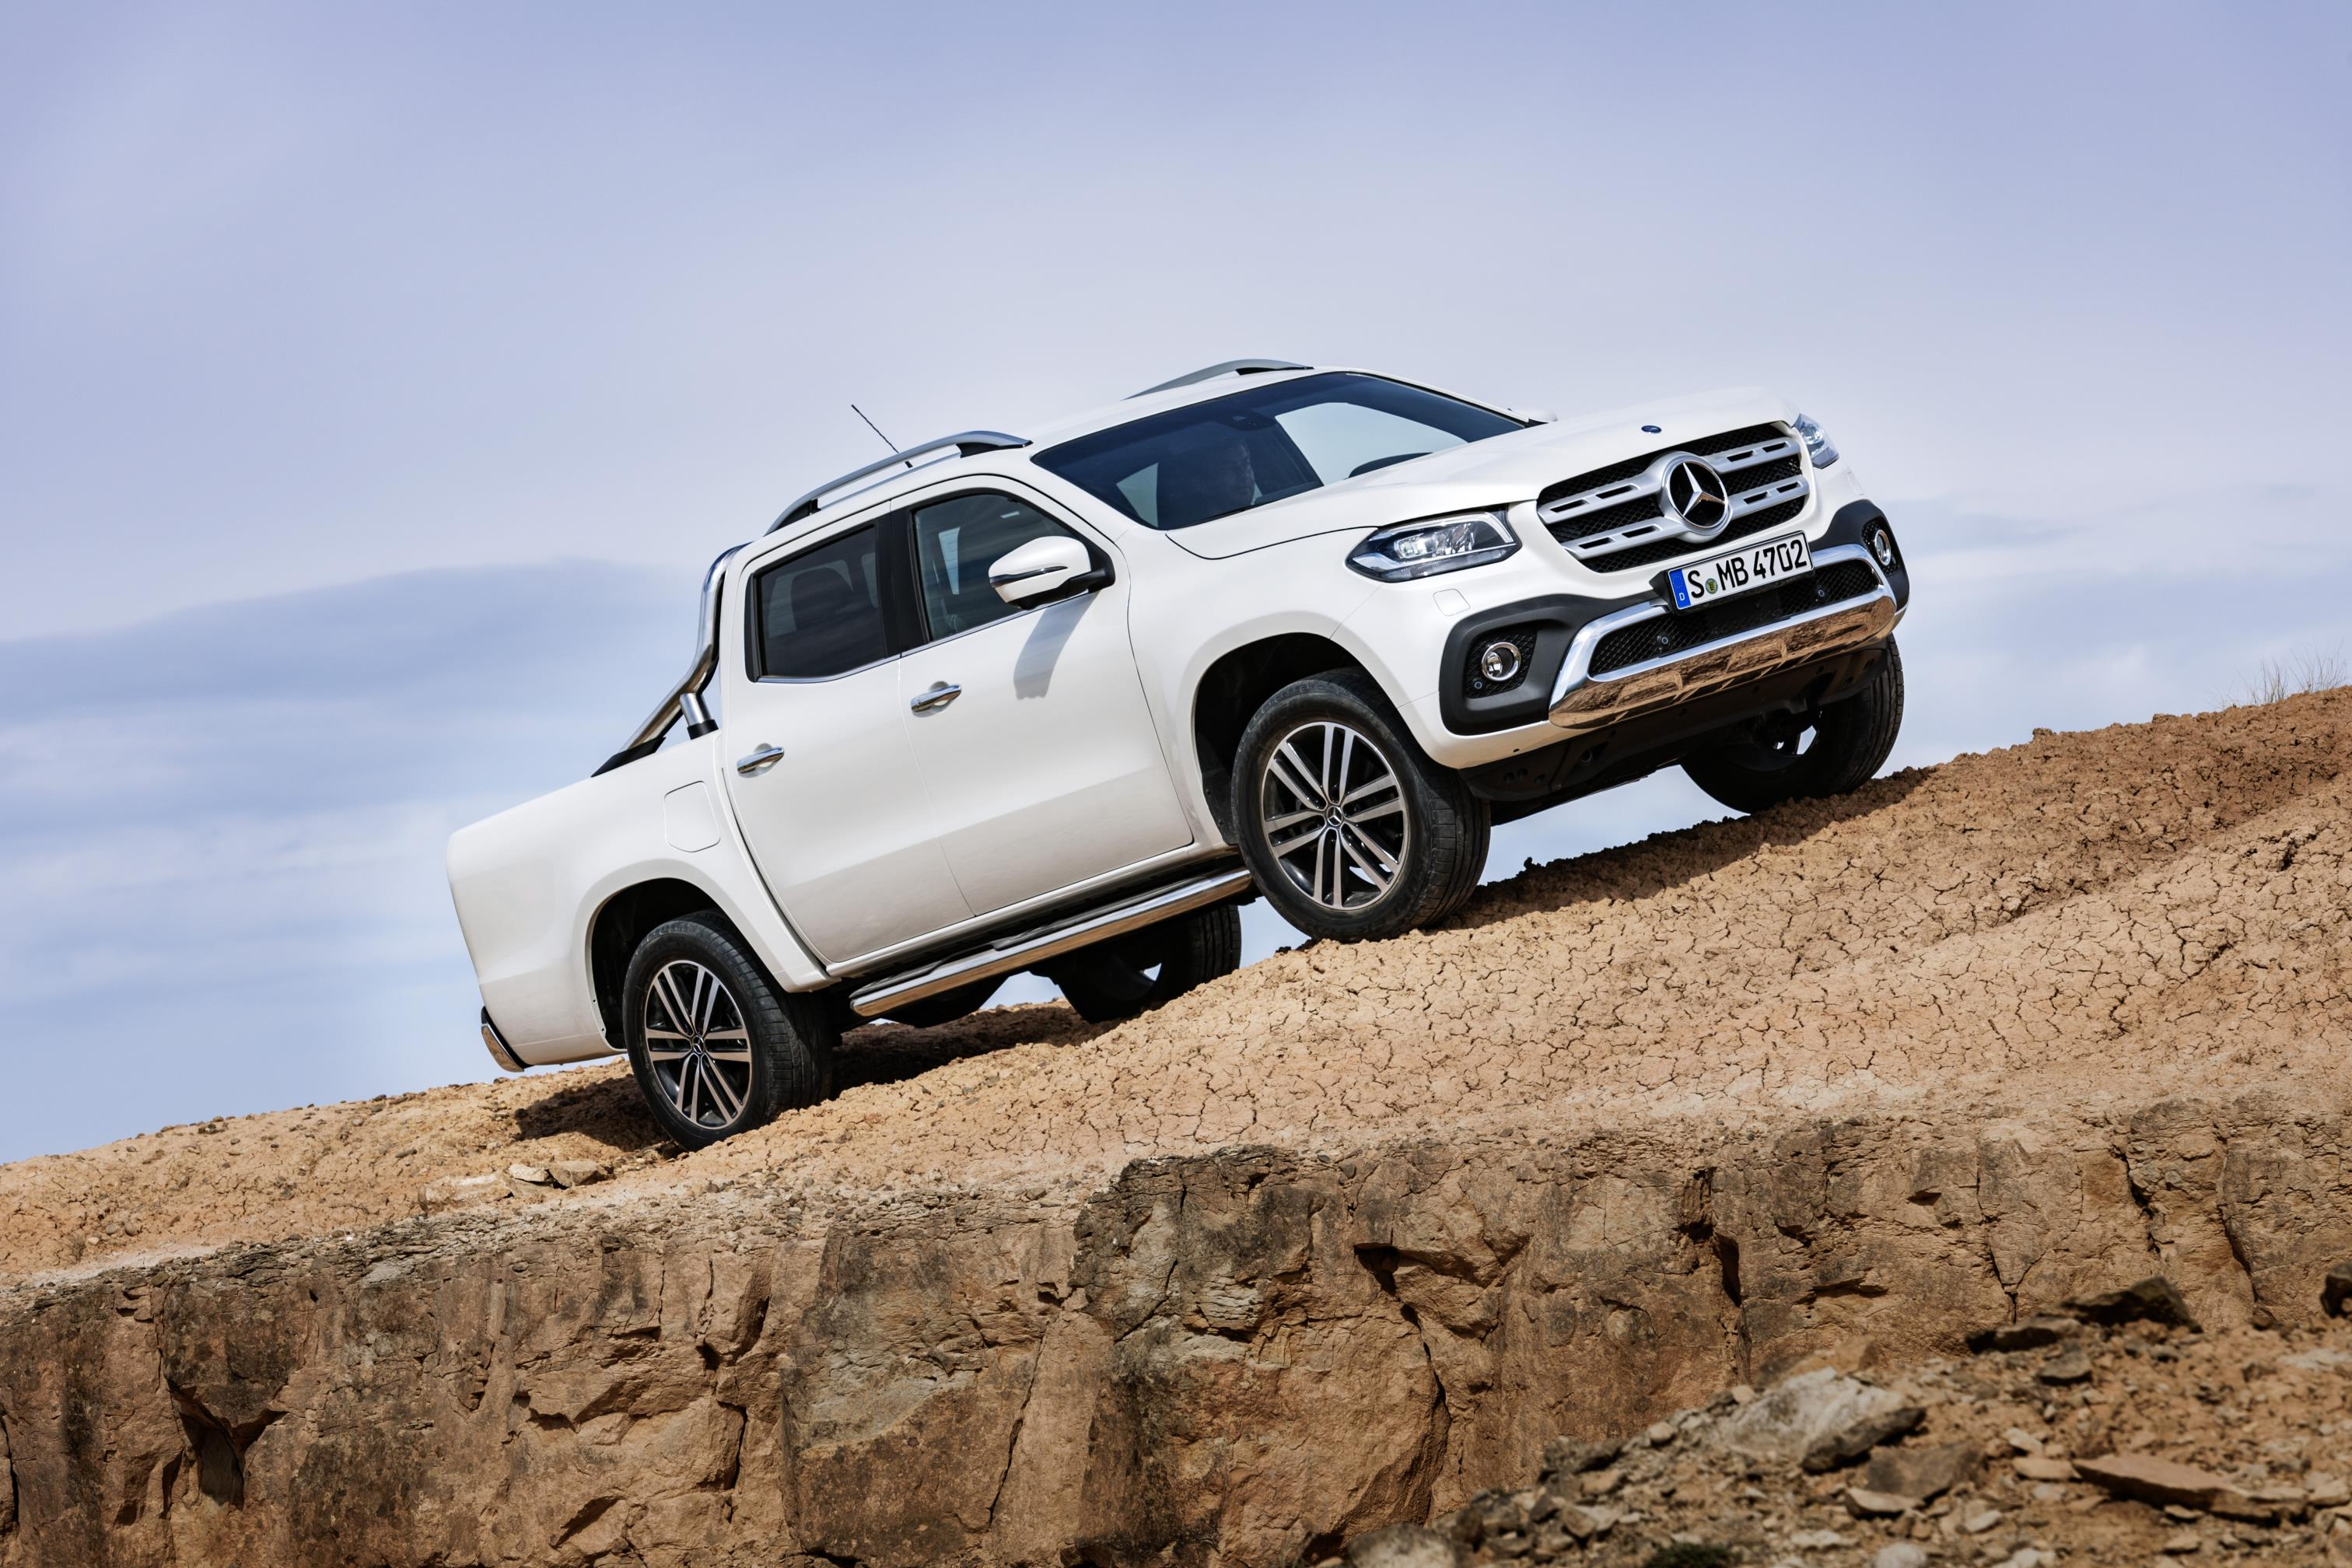 The new Mercedes X-Class could be the wheels of choice for the next Open